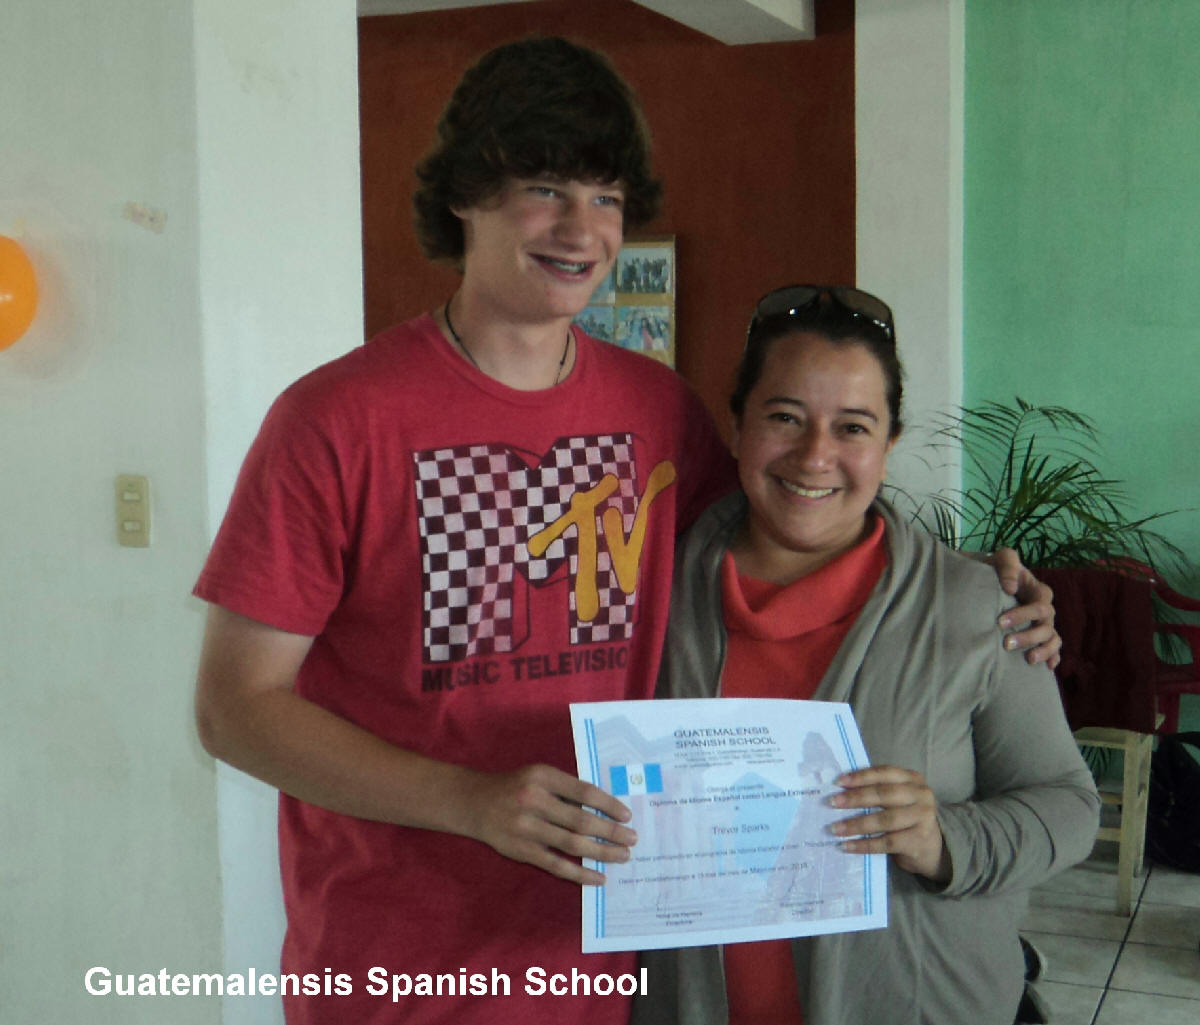 In Guatemalensis Spanish School you will find professional and friendly teachers